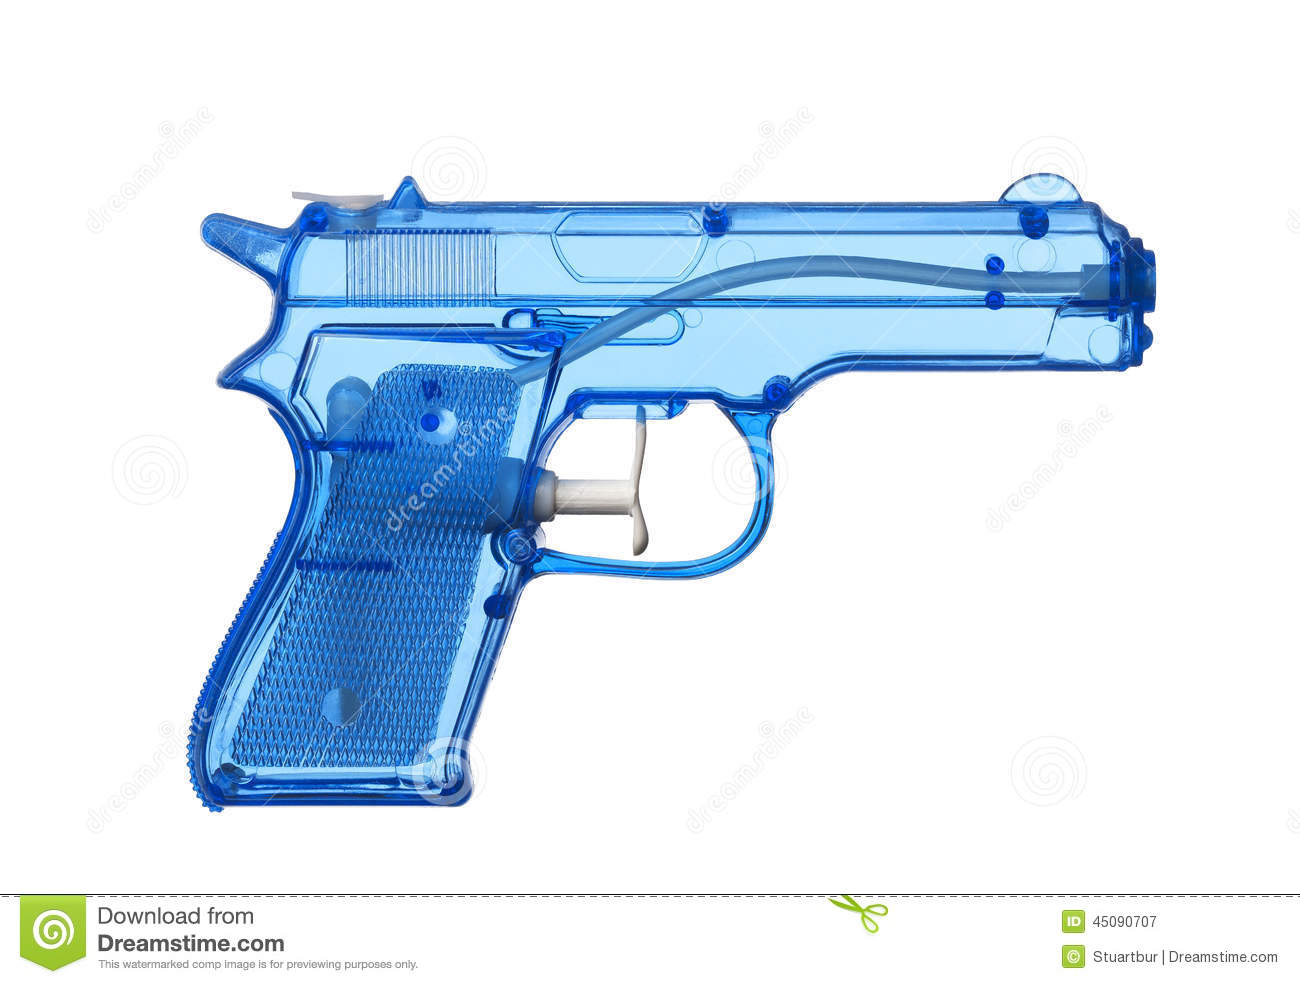 Click image for larger version  Name:water-pistol-blue-isolated-white-background-45090707.jpg Views:161 Size:111.6 KB ID:99502